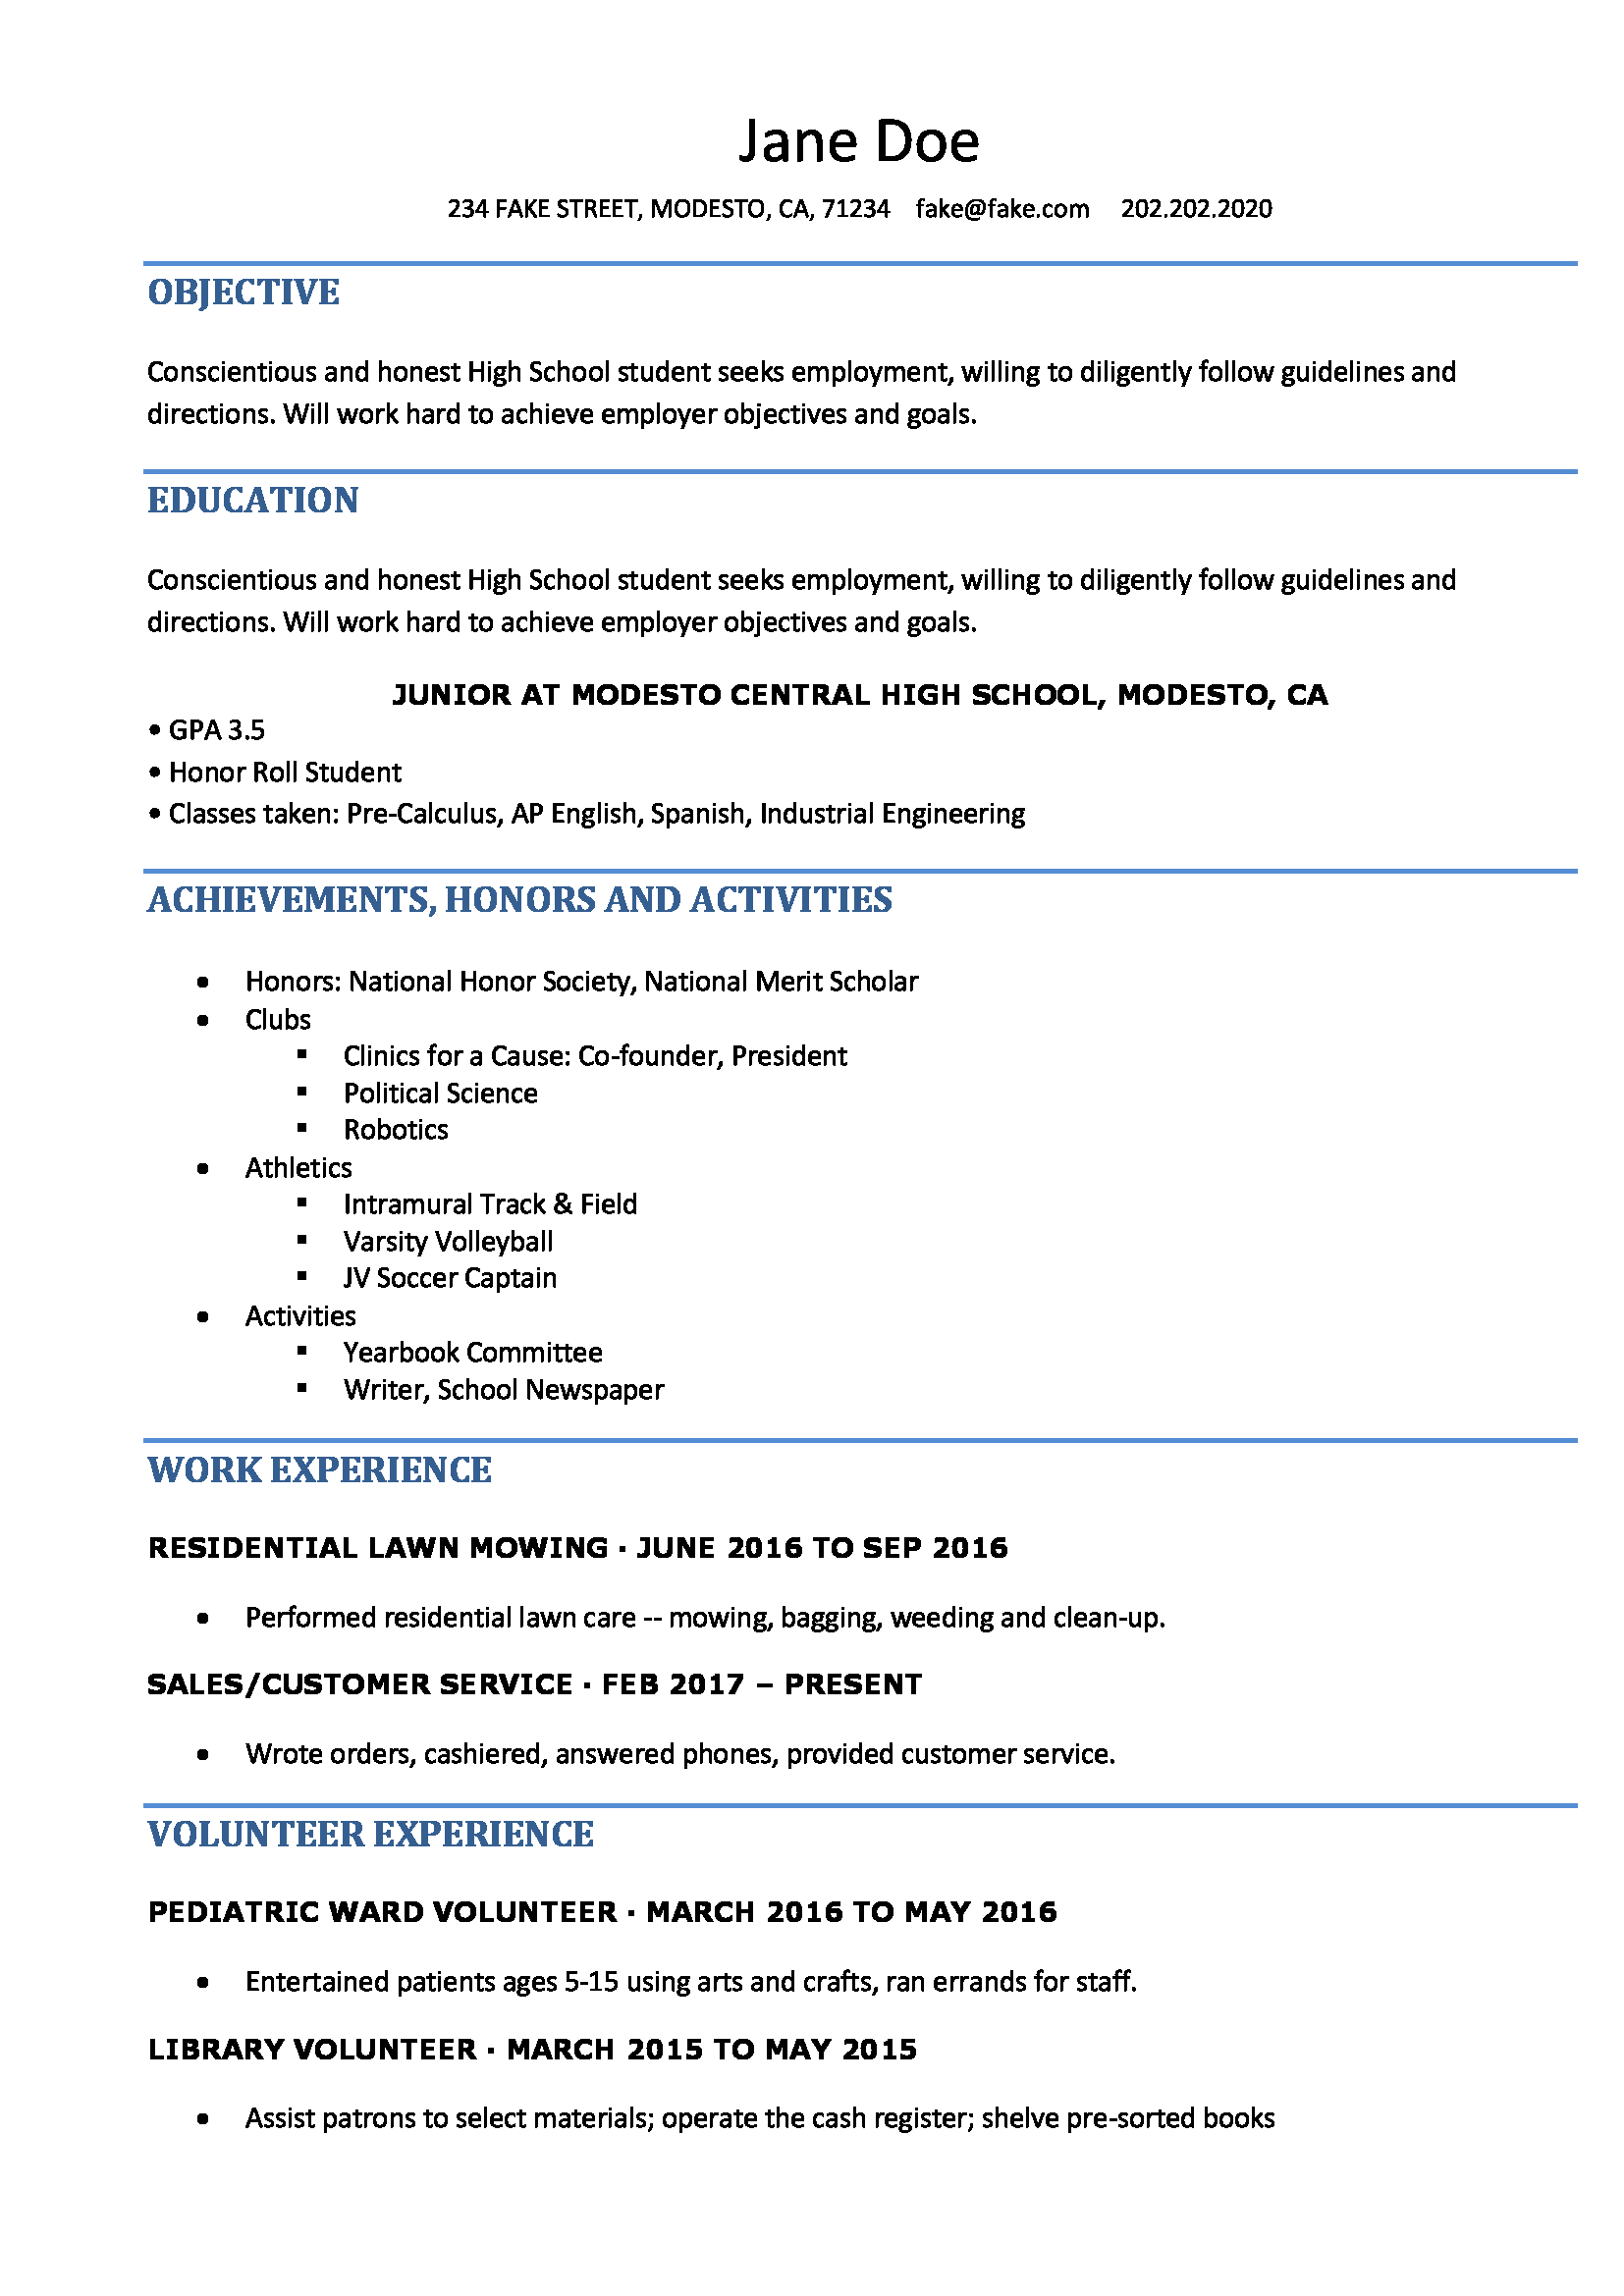 resume for highschool students high school resume resumes for high school students 24349 | be09281e bcb1 4f80 afea 66fdbc36e7e0